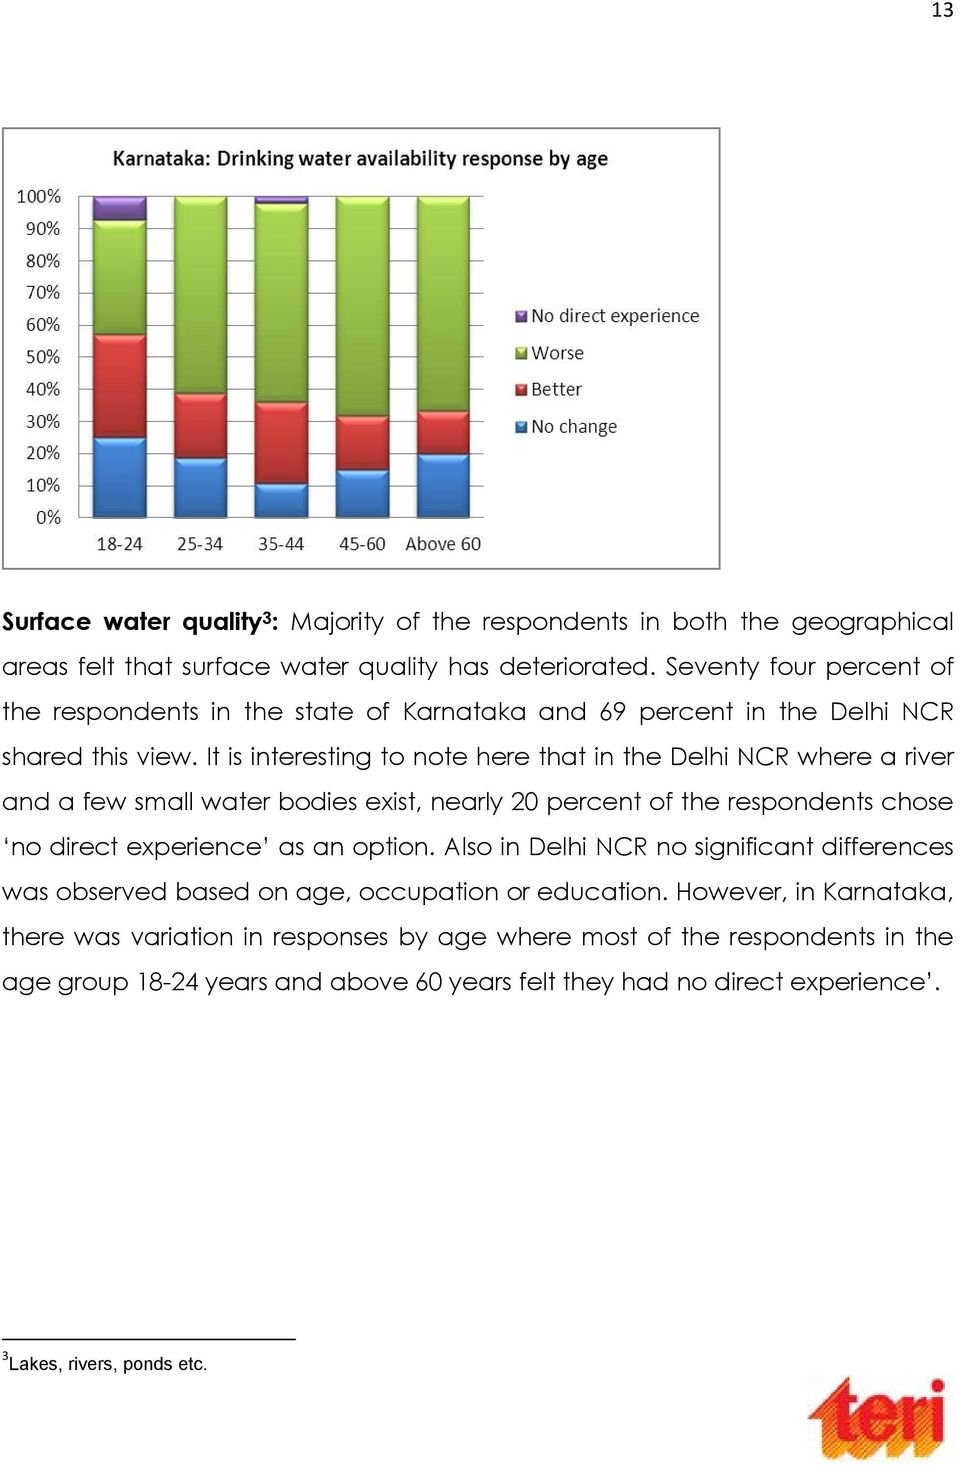 It is interesting to note here that in the Delhi NCR where a river and a few small water bodies exist, nearly 20 percent of the respondents chose no direct experience as an option.